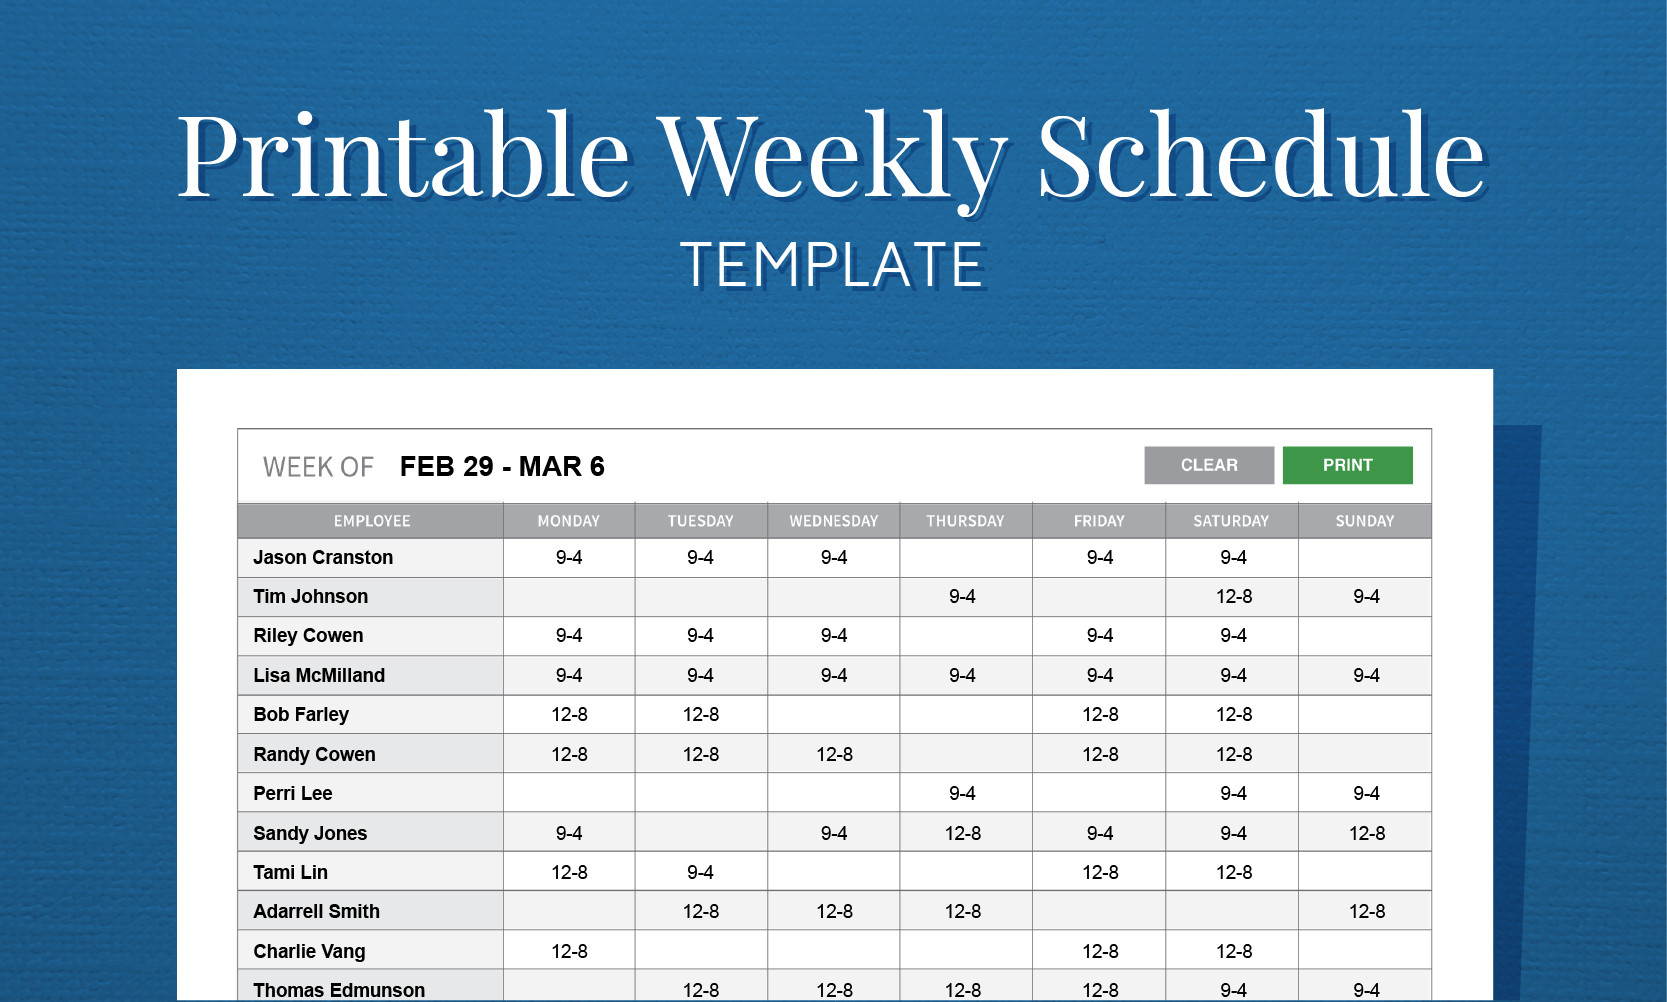 Monthly Employee Schedule Template Excel Free Printable Work Schedule Template for Employee